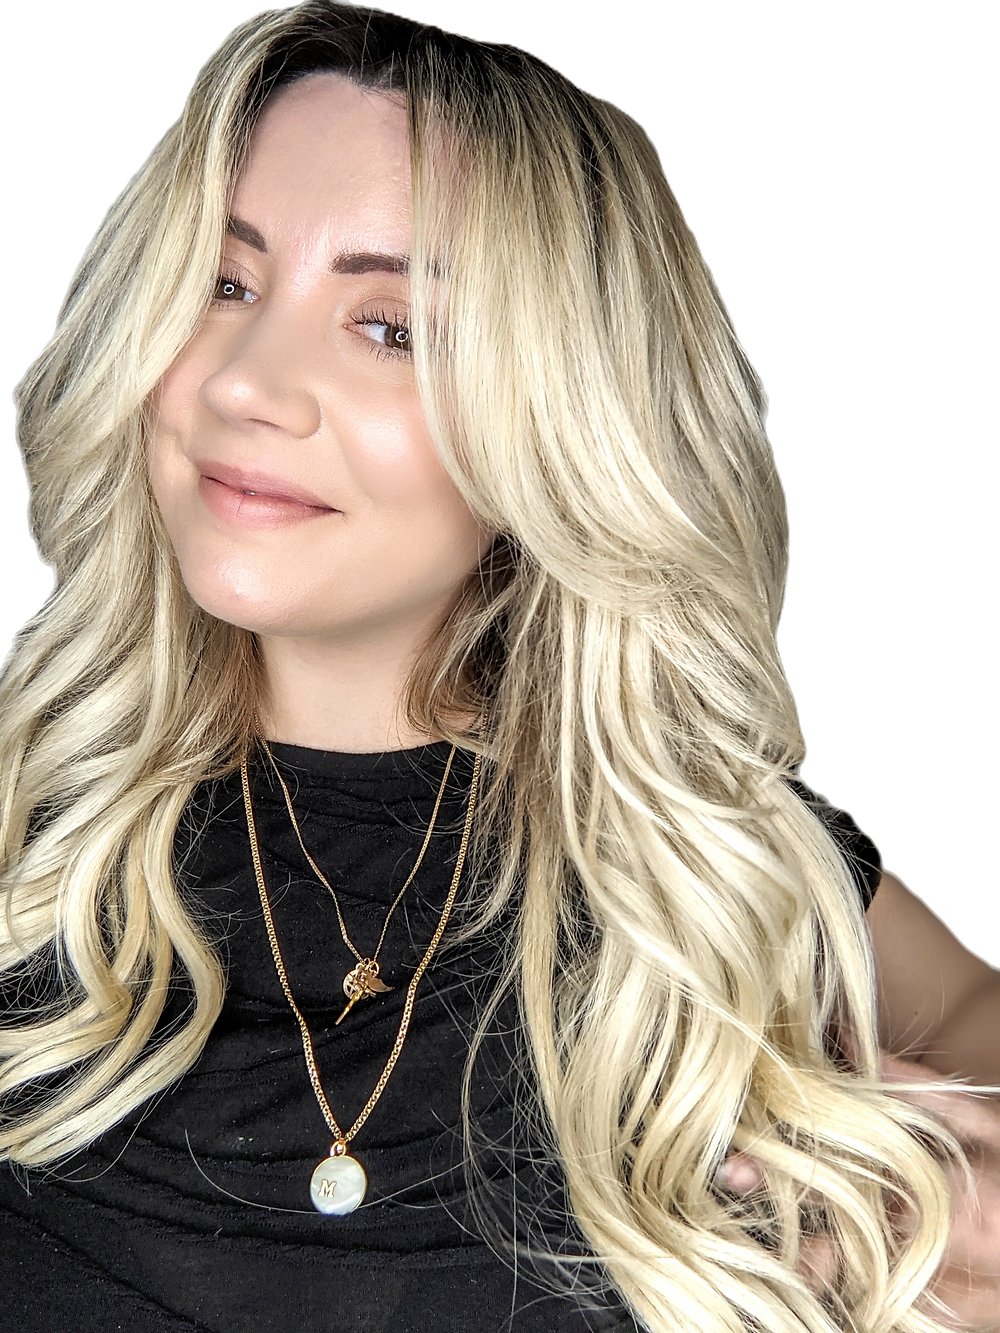 I wear hair extensions and I love them!  I also make sure to keep my natural hair strong to make sure I the extensions don't fall or break off.